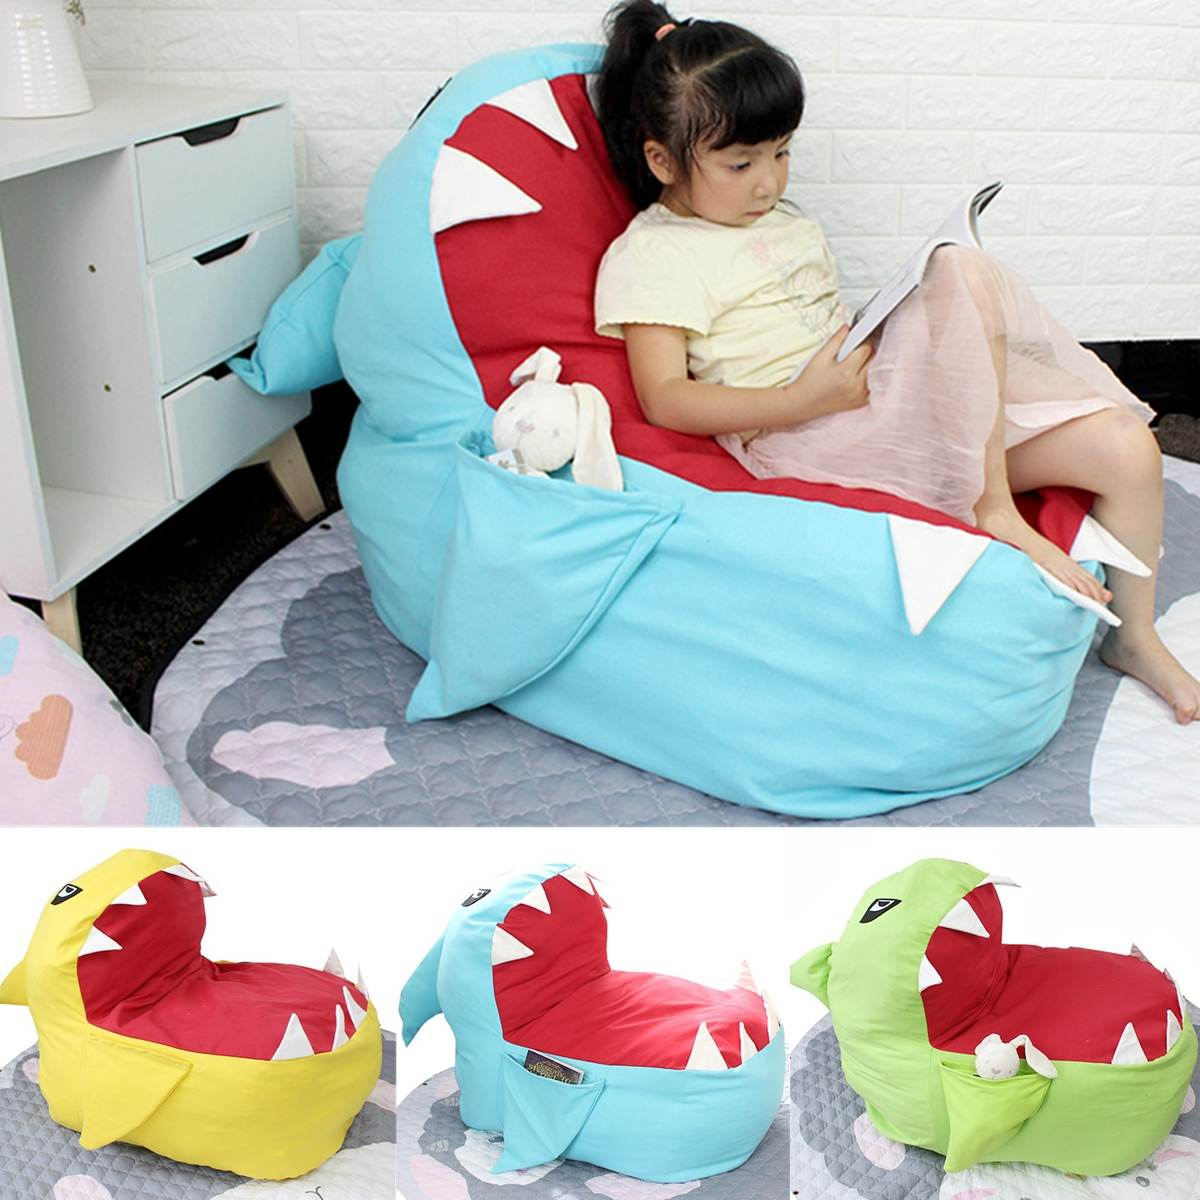 Children Seat Sofa Kids Bean Bag Cartoon Shark Skin Upscale Baby Chair Toddler Nest Puff Seat Bean Chair Only Cover No Filling legos for boys ninjago